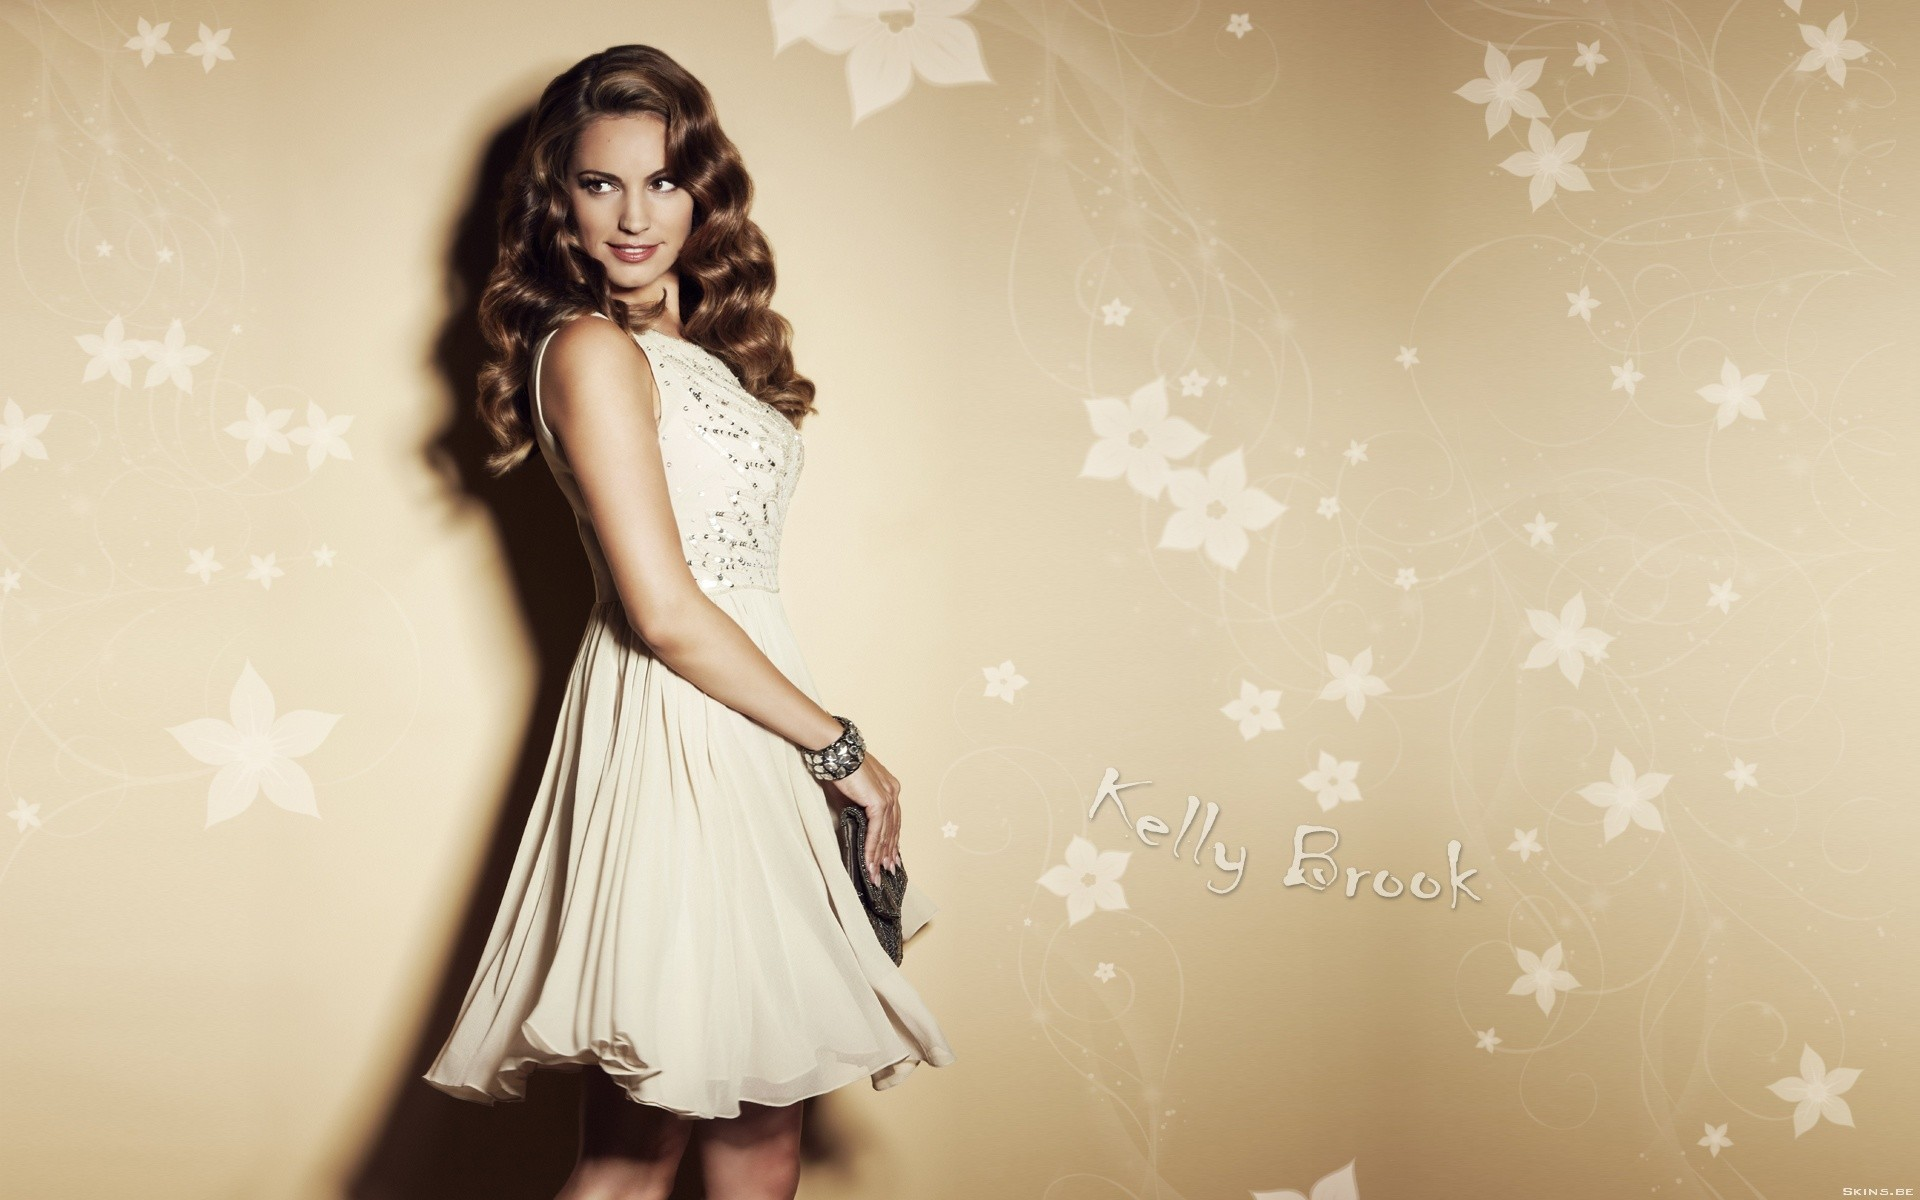 woman Kelly Brook HD Wallpaper